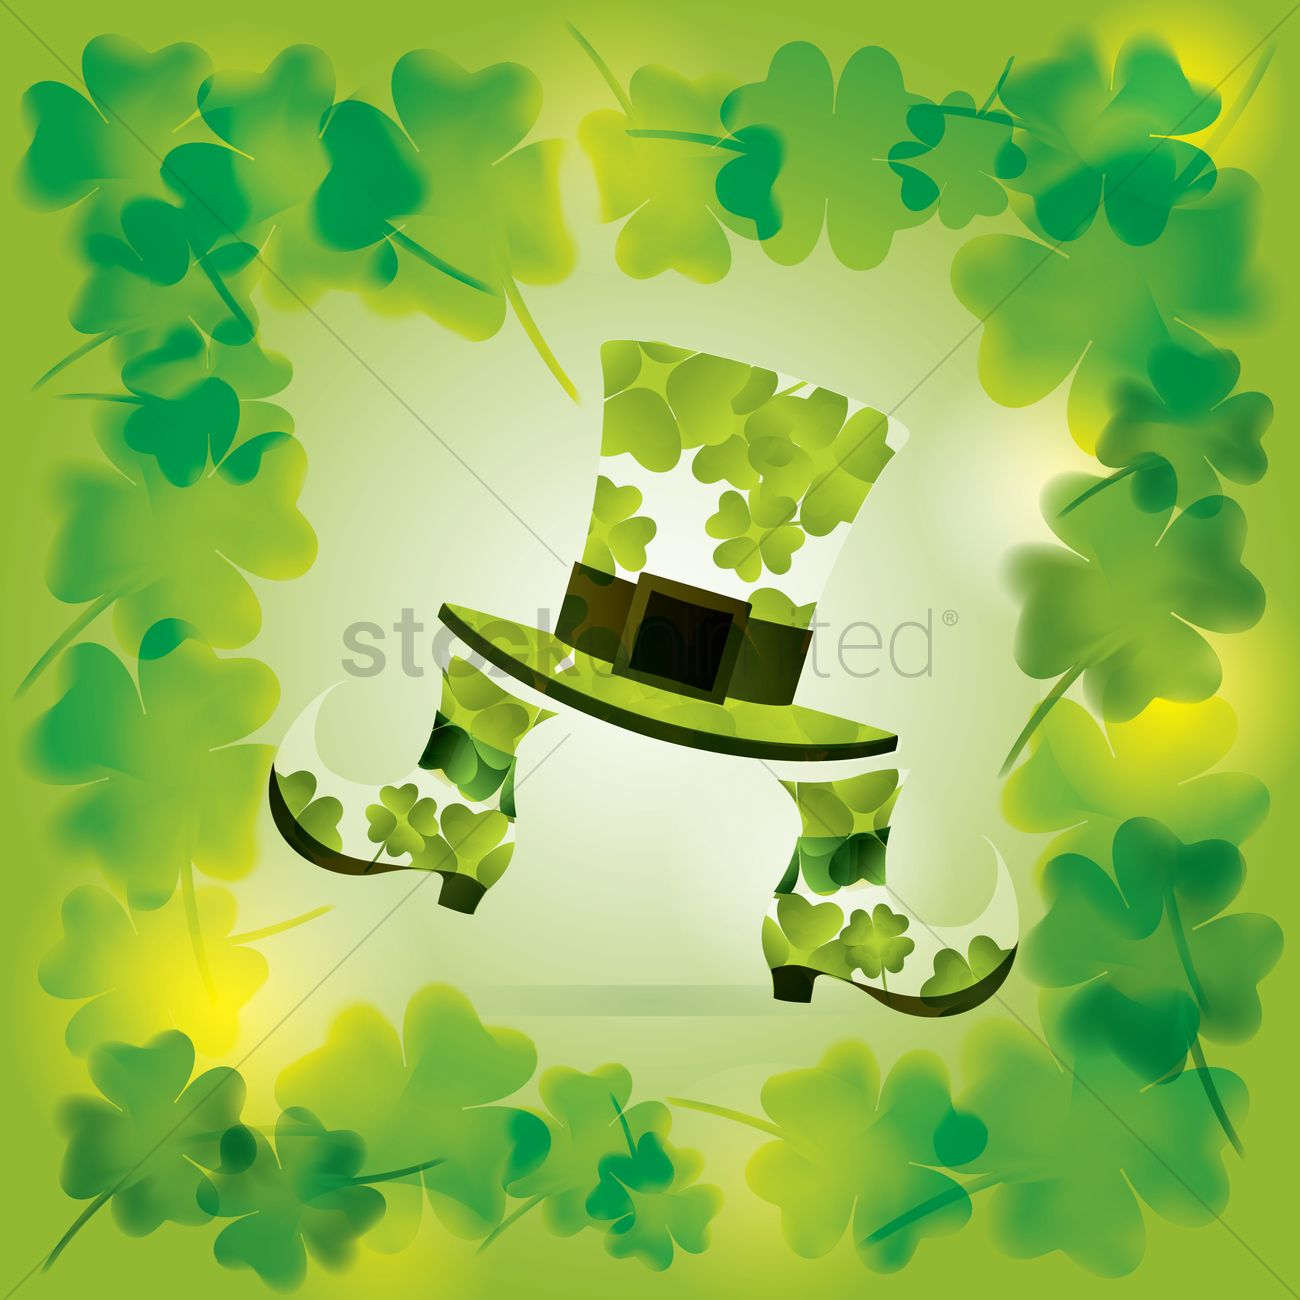 St Patrick S Day Wallpaper Vector Image 1481956